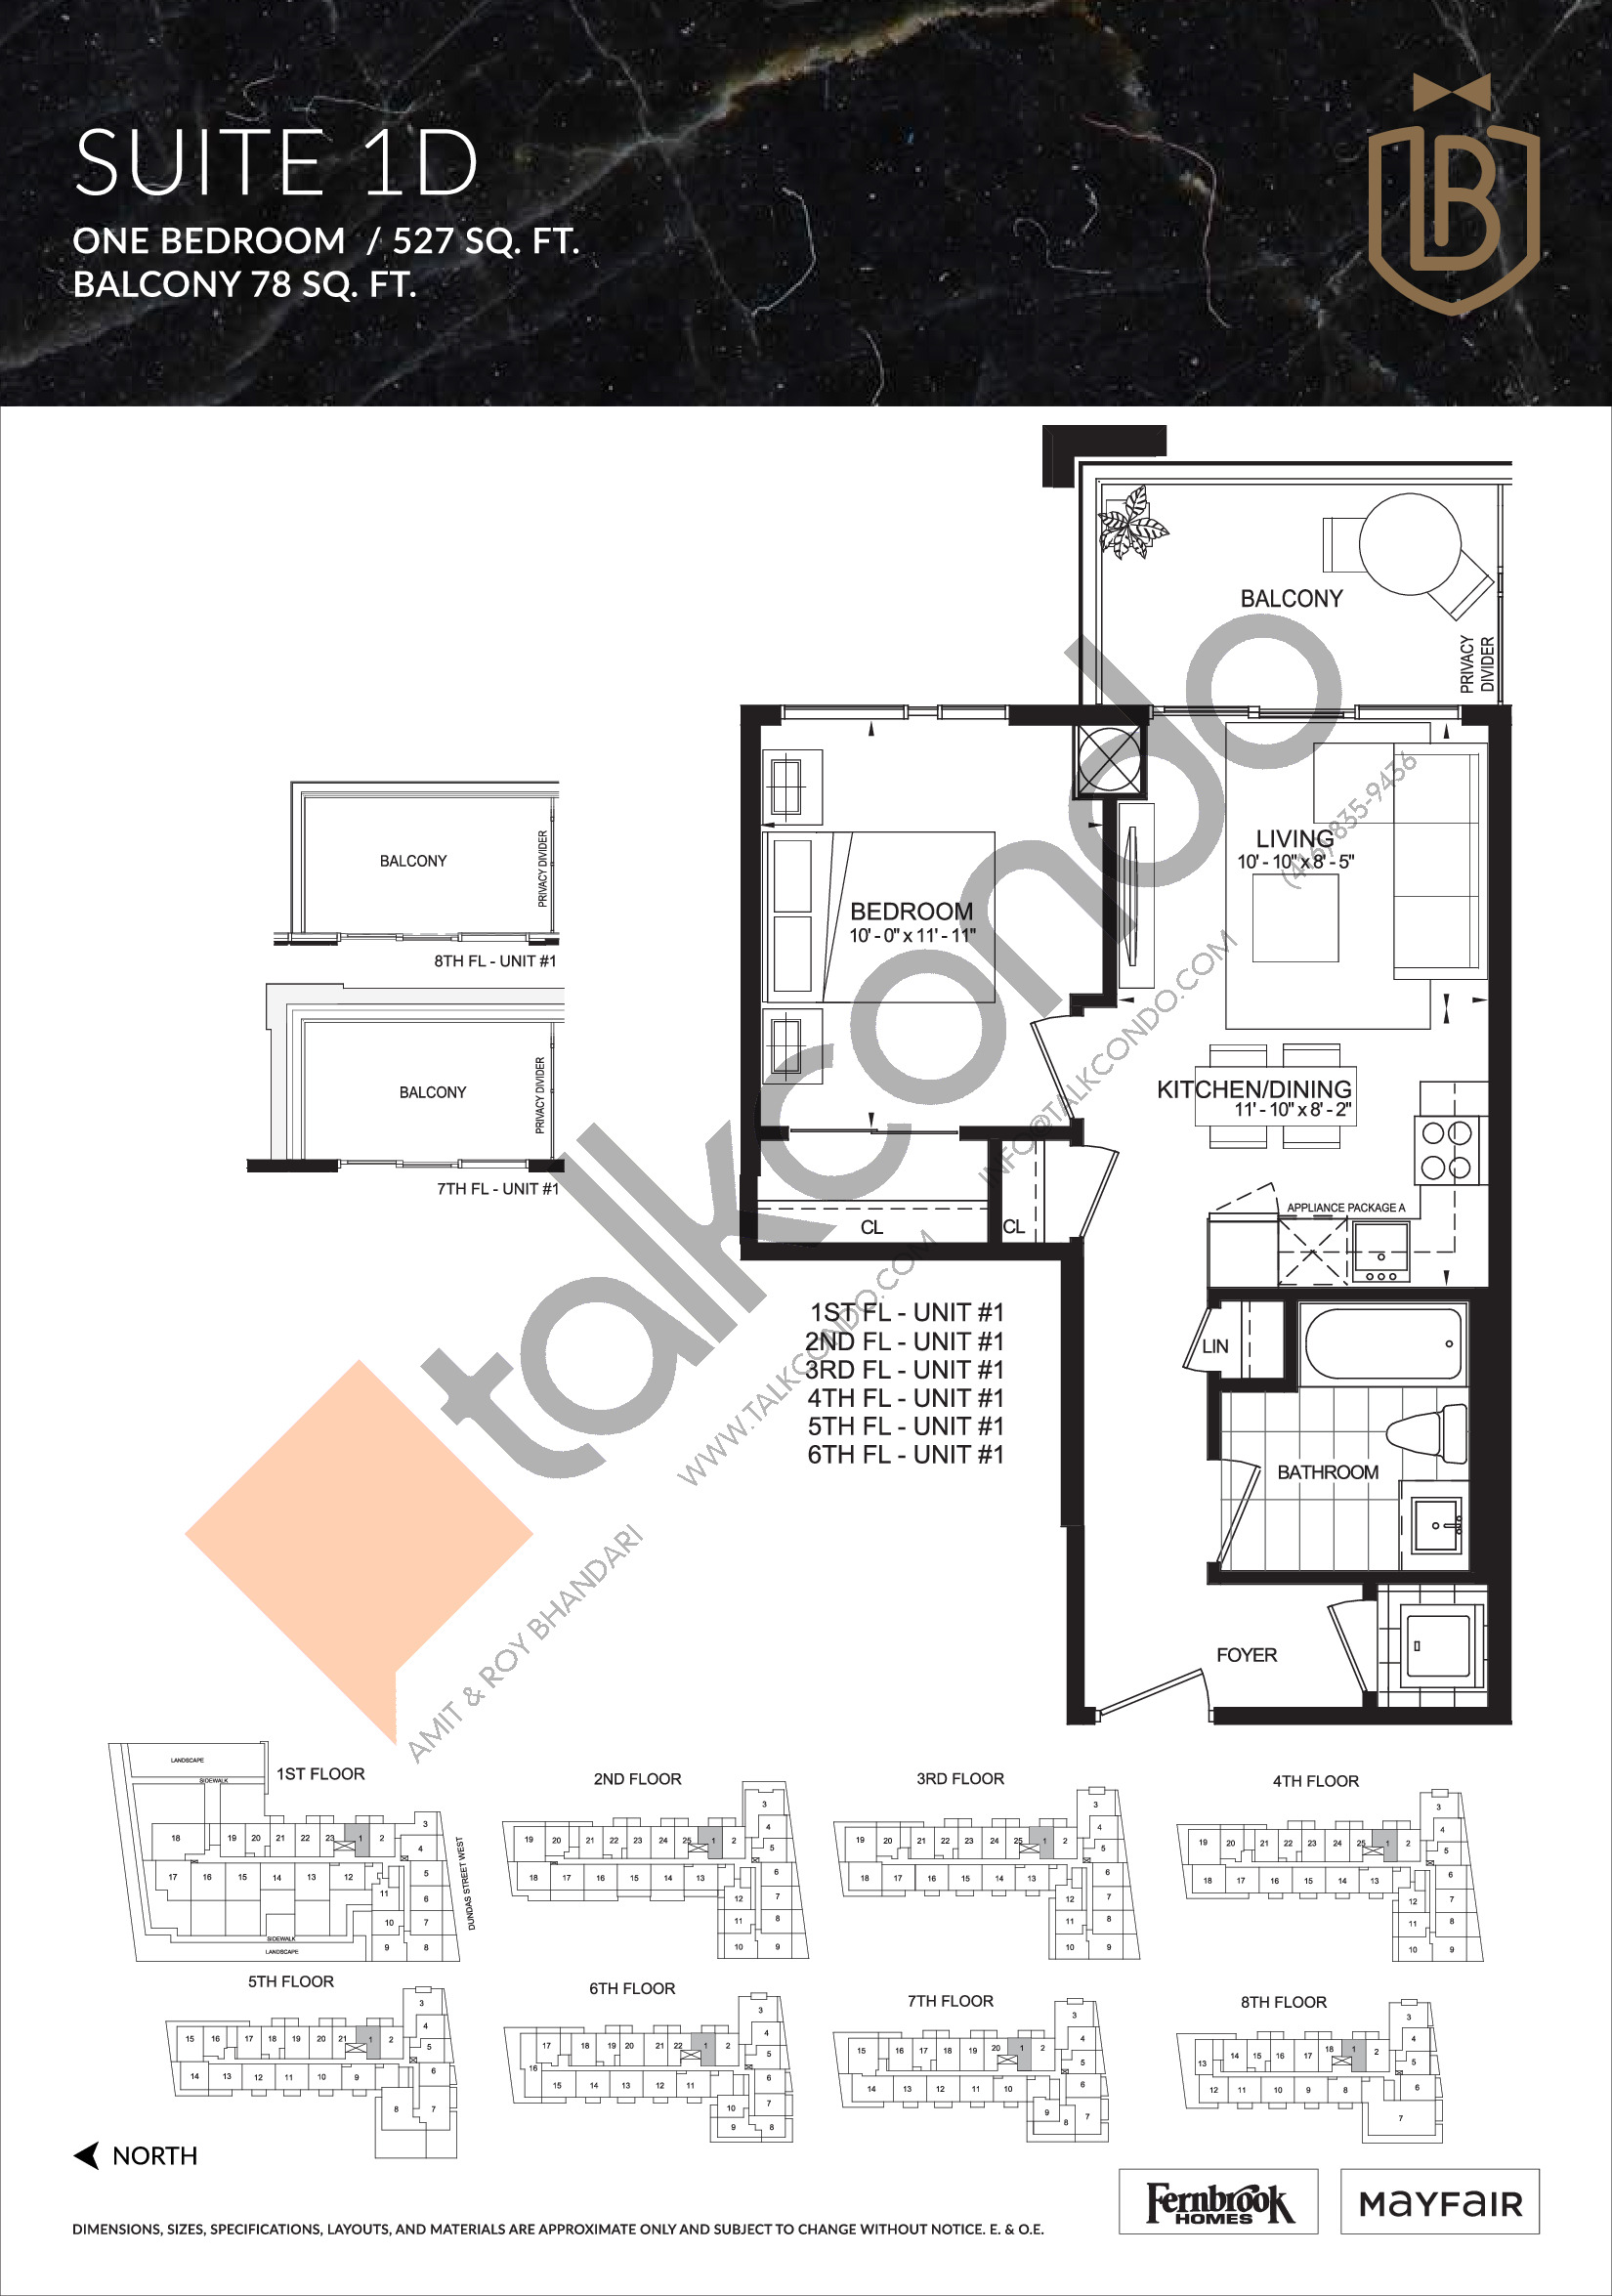 Suite 1D Floor Plan at The Butler Condos - 527 sq.ft